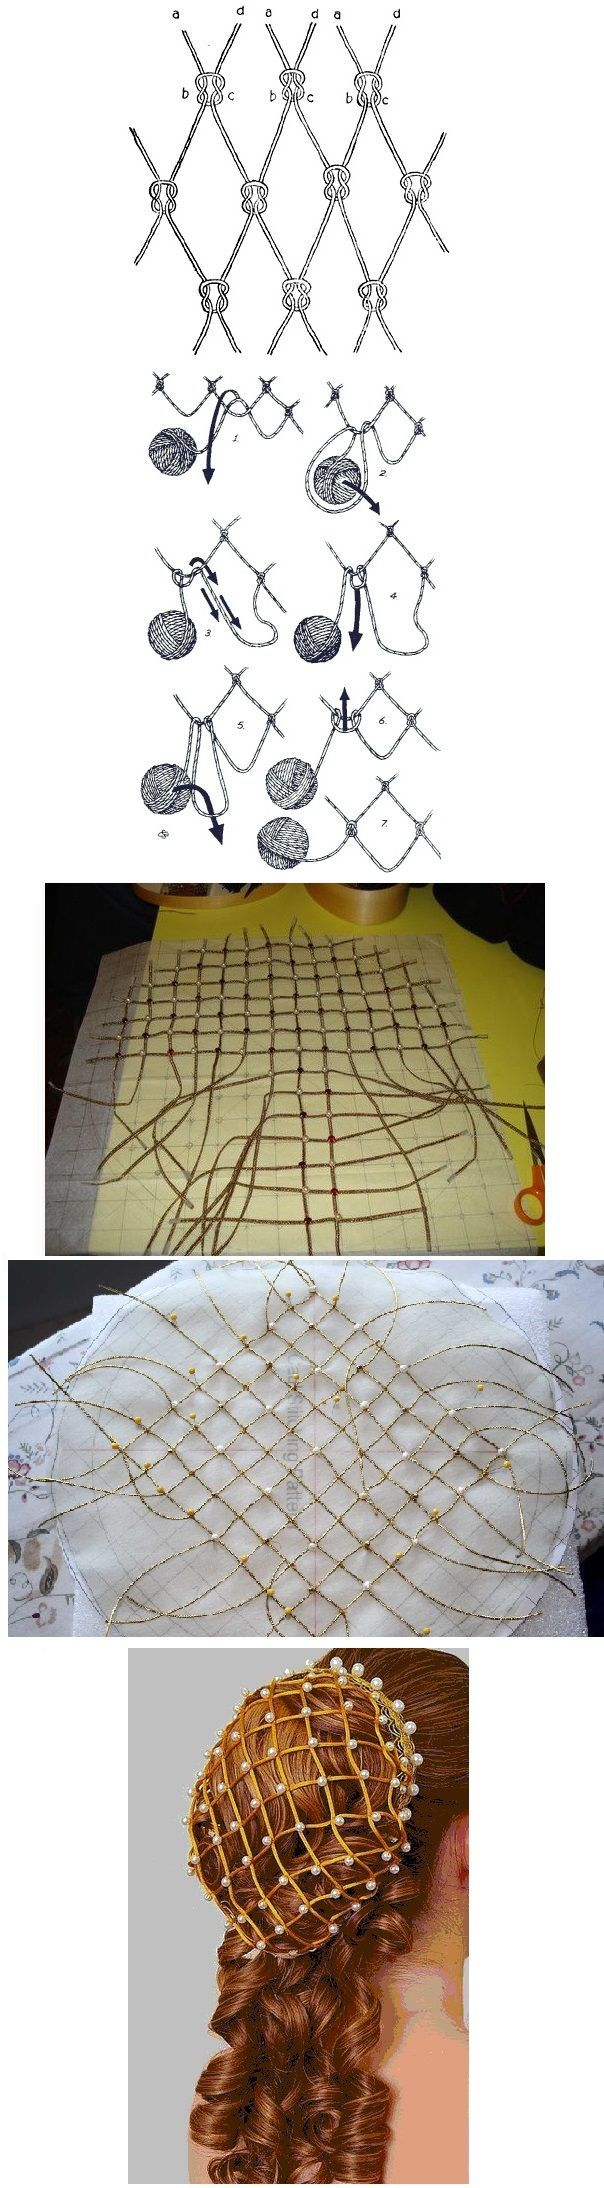 how to make an italian renaissance beaded hairnet (called a snood or caul)